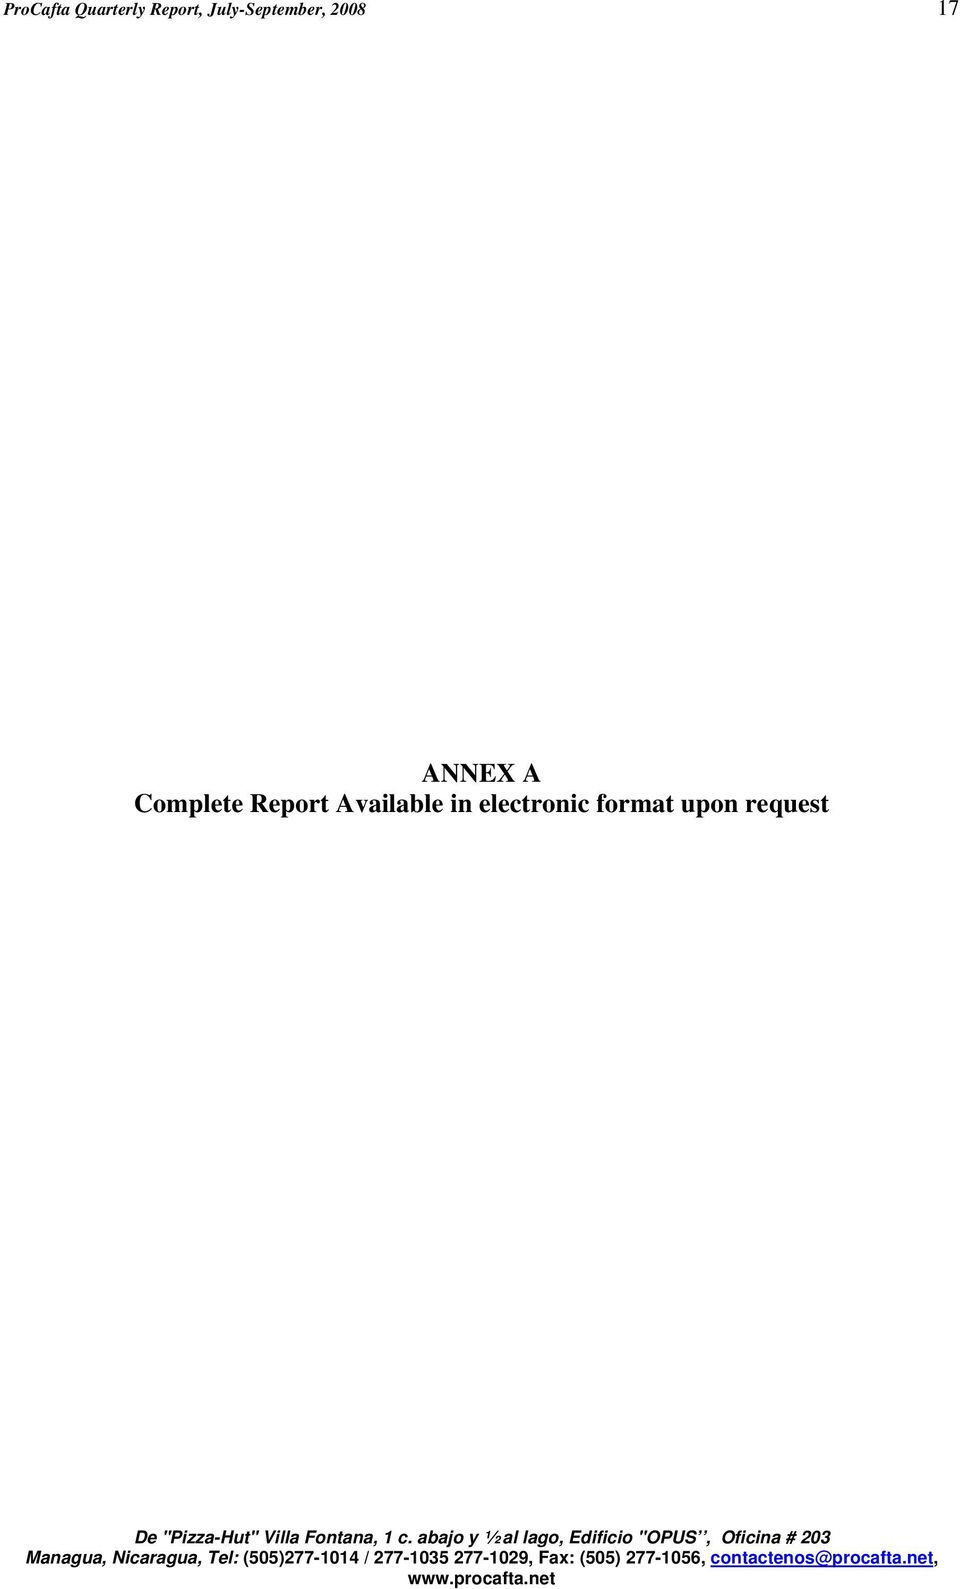 A Complete Report Available